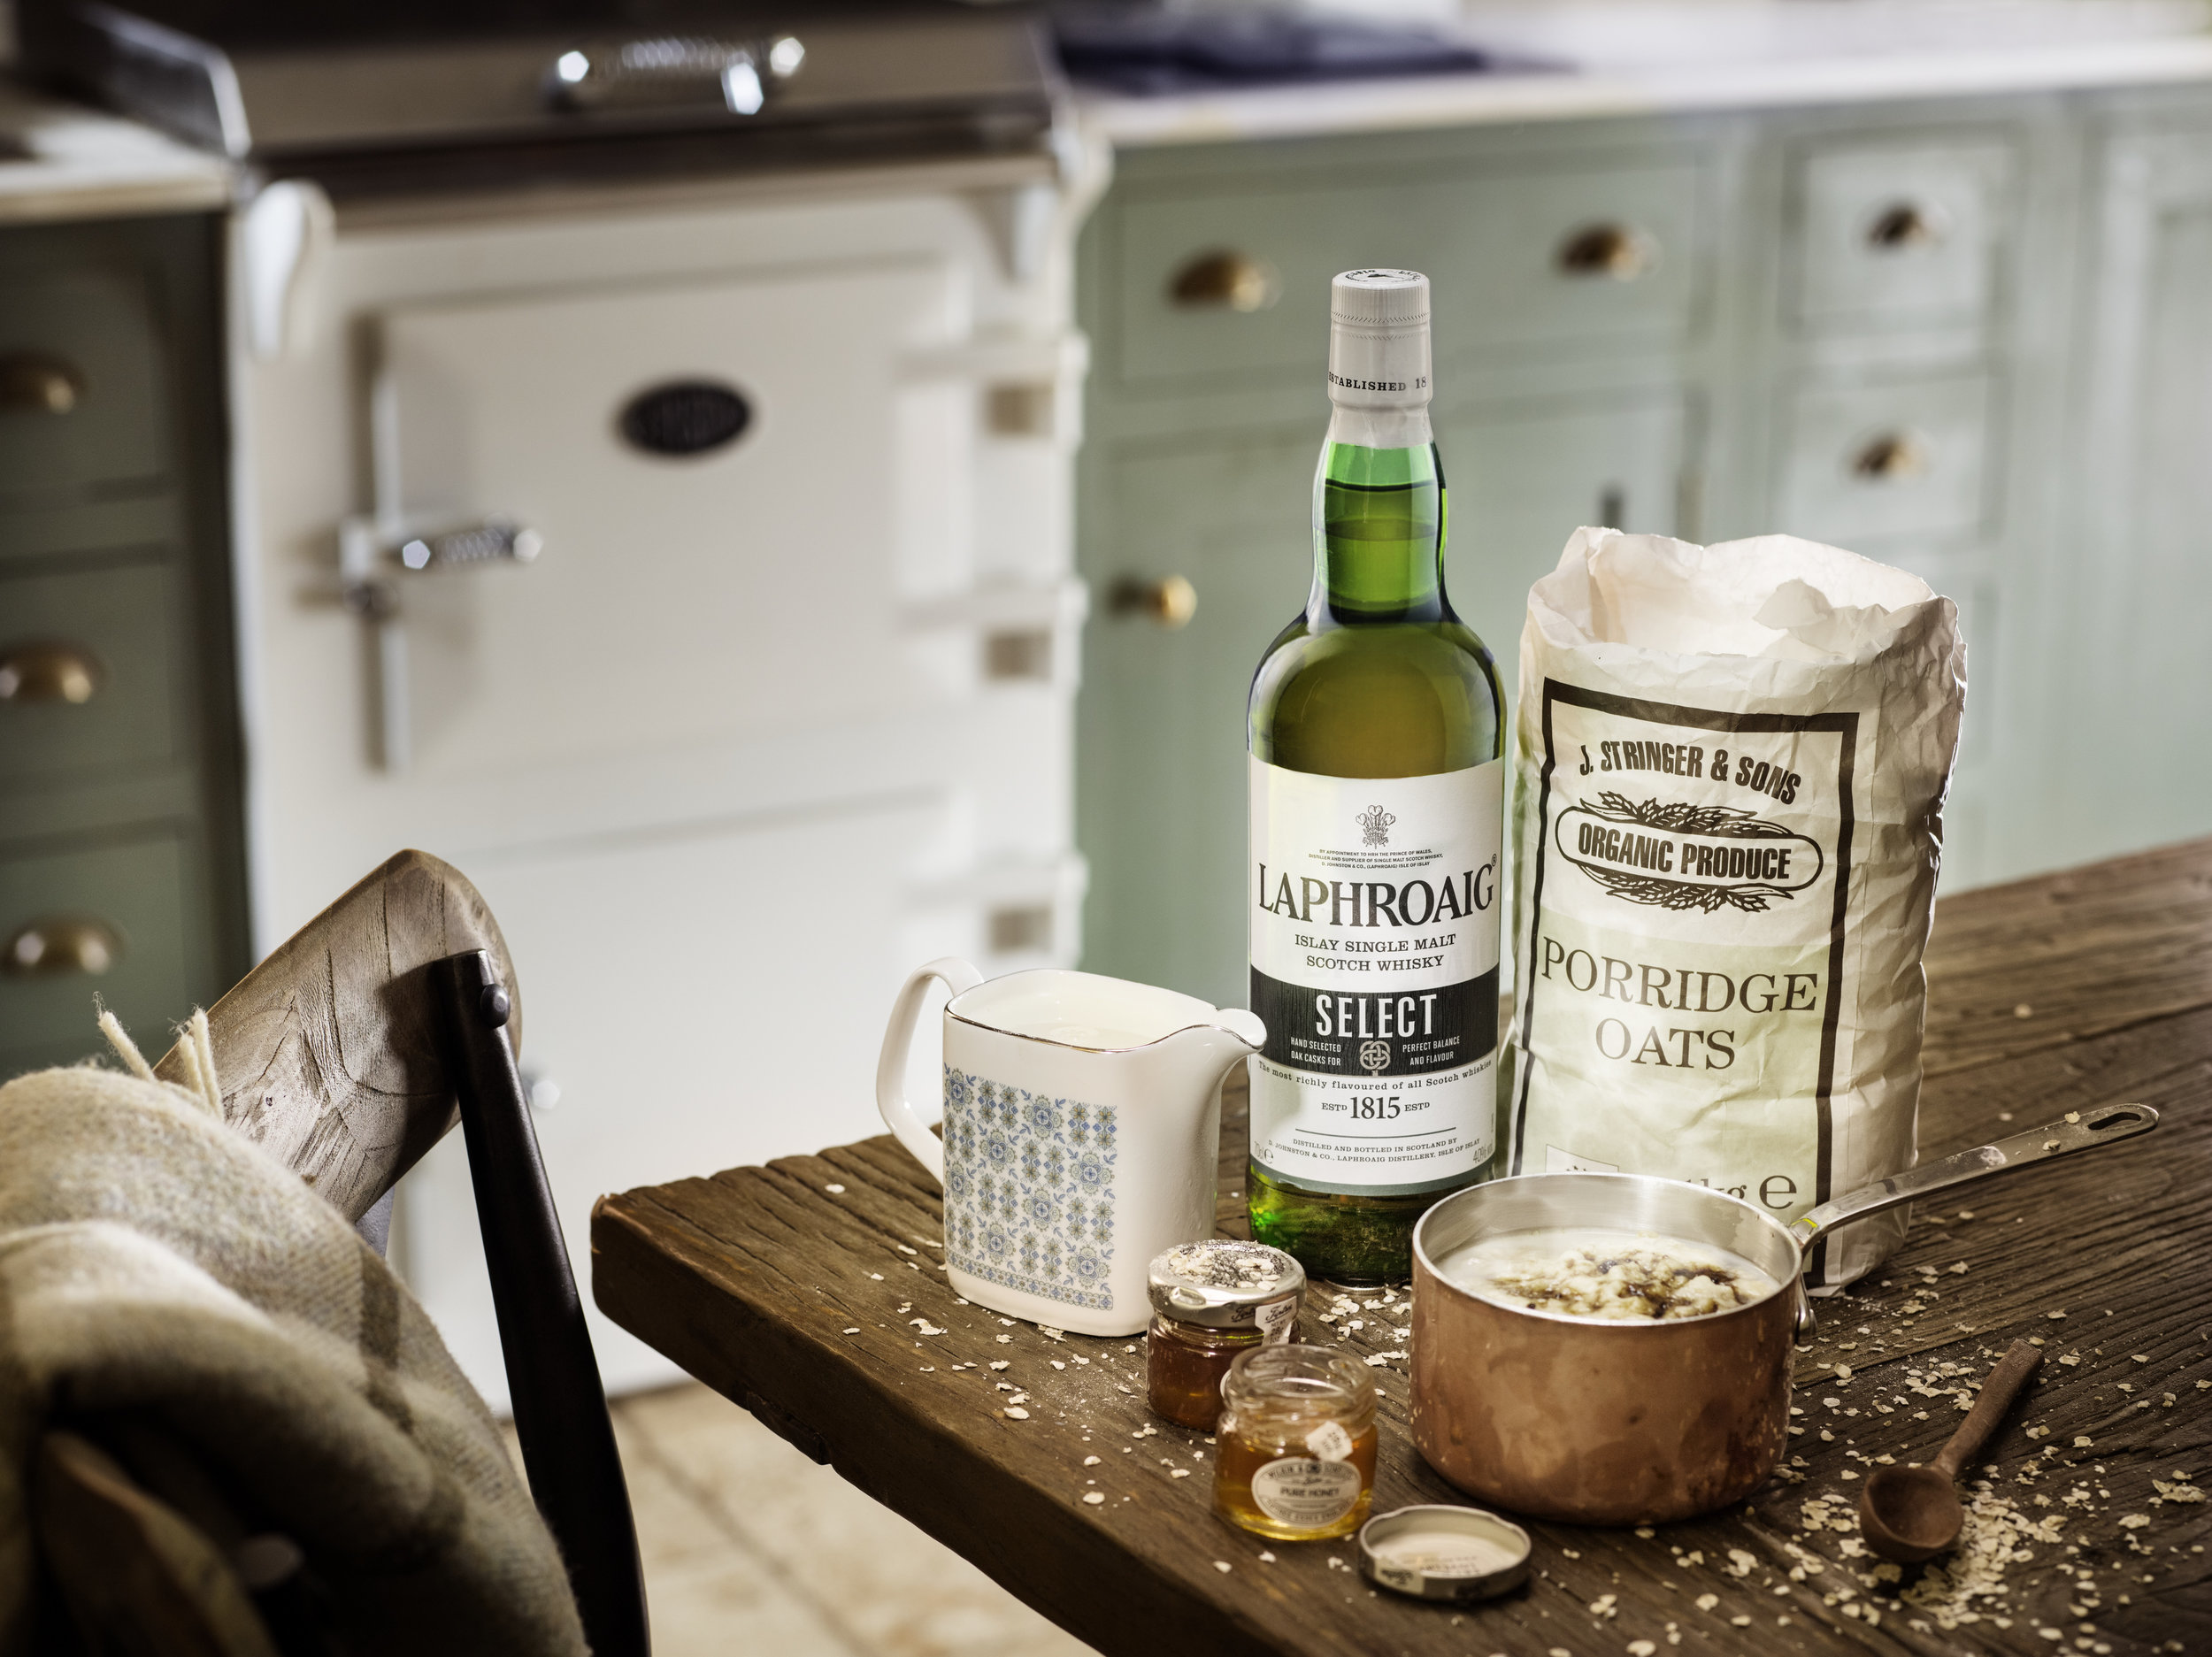 breakfast laphroaig with porridge, still life cocktail drink shoot. advertising, packshot, candlelit and cosy. lifestyle campaign images with atmosphere. Whisky, vodka, coffee, interior shots. whiskey